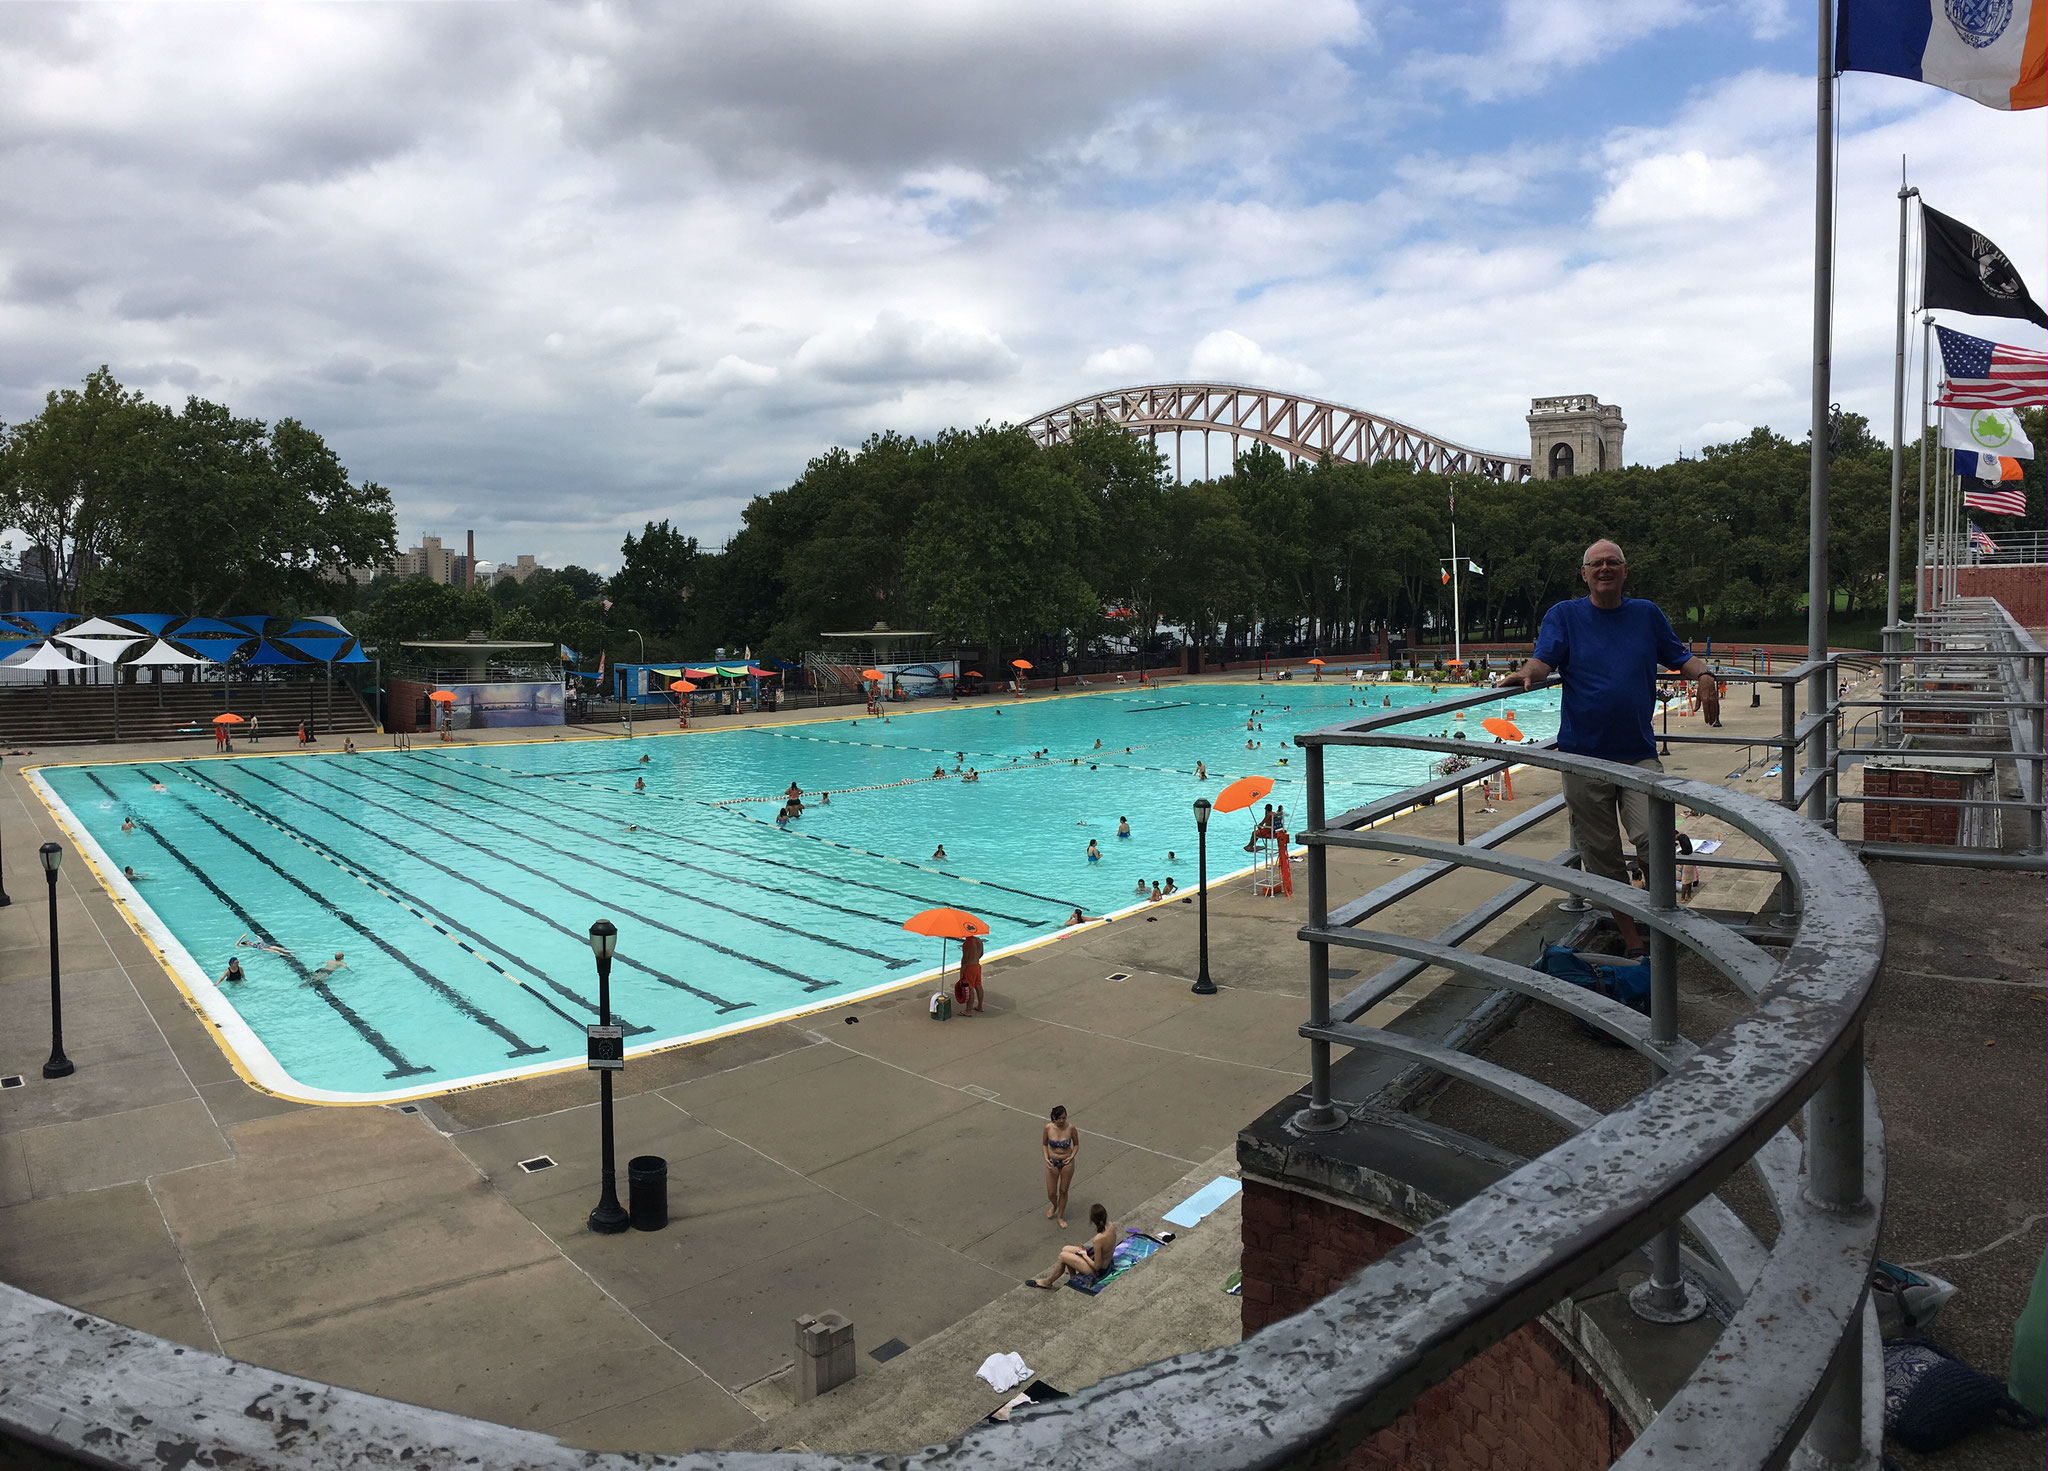 Bernd at the Astoria Pool, Queens, NYC  The  Pool Width is 50 meters!!